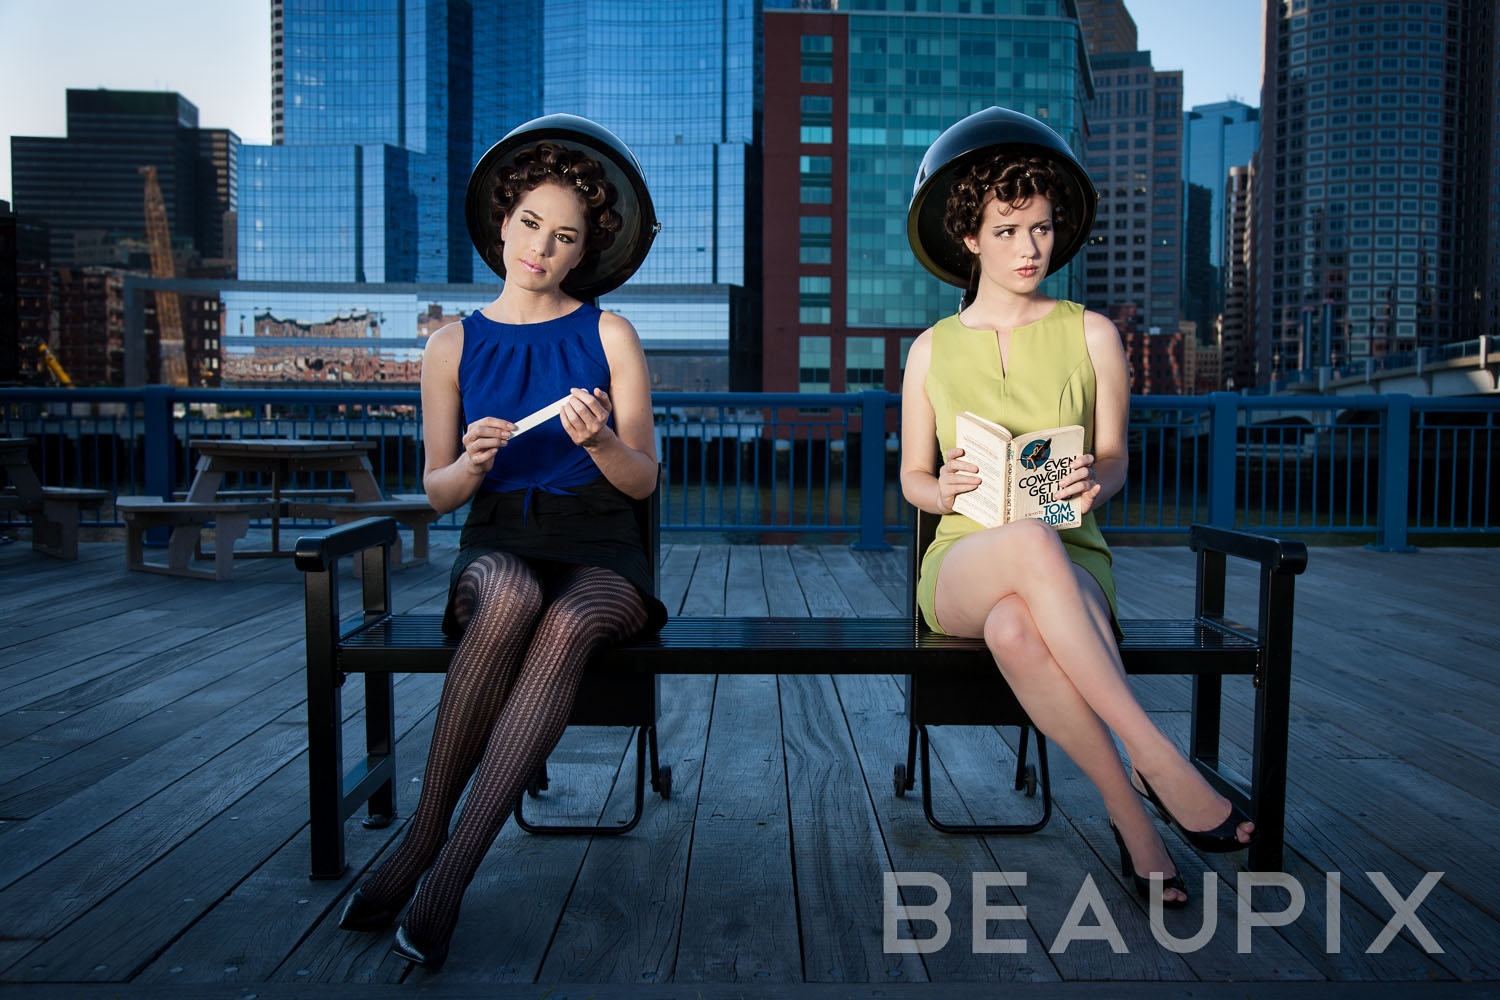 BEAUPIX Creative photographer Ryuji Suzuki for commercial work in Boston